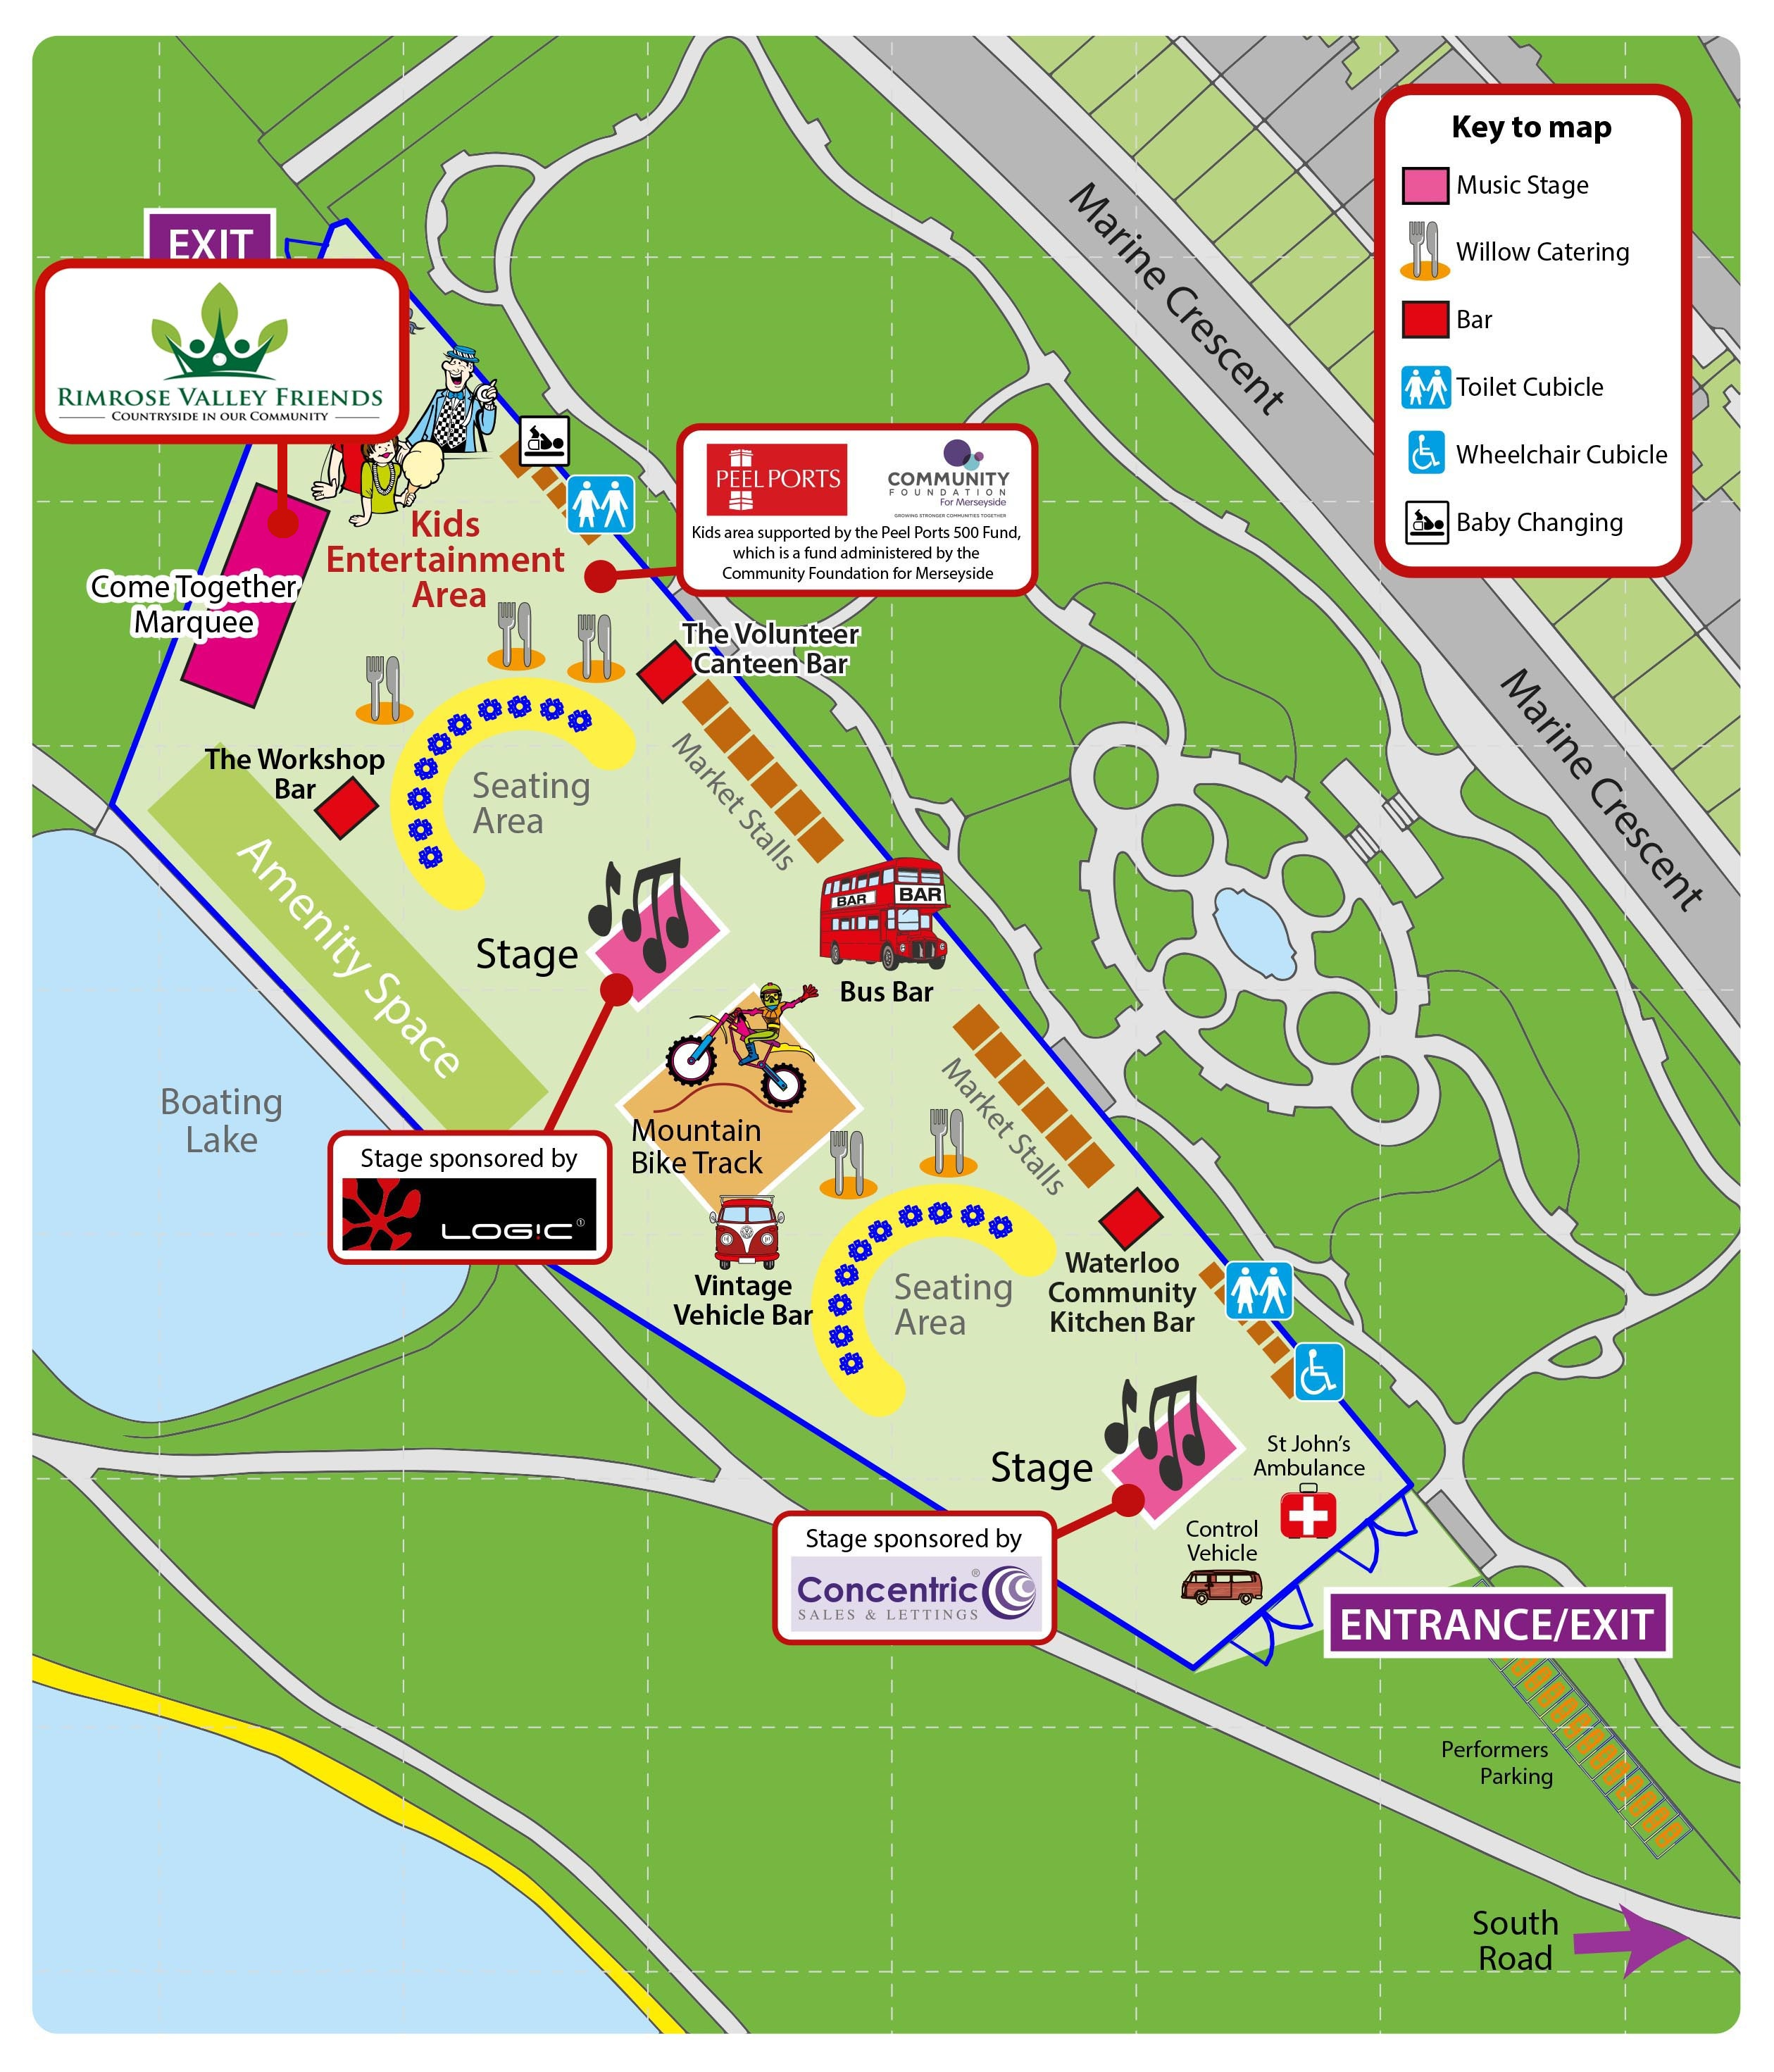 To See A High Quality Map Of The Event And Where To Find Us